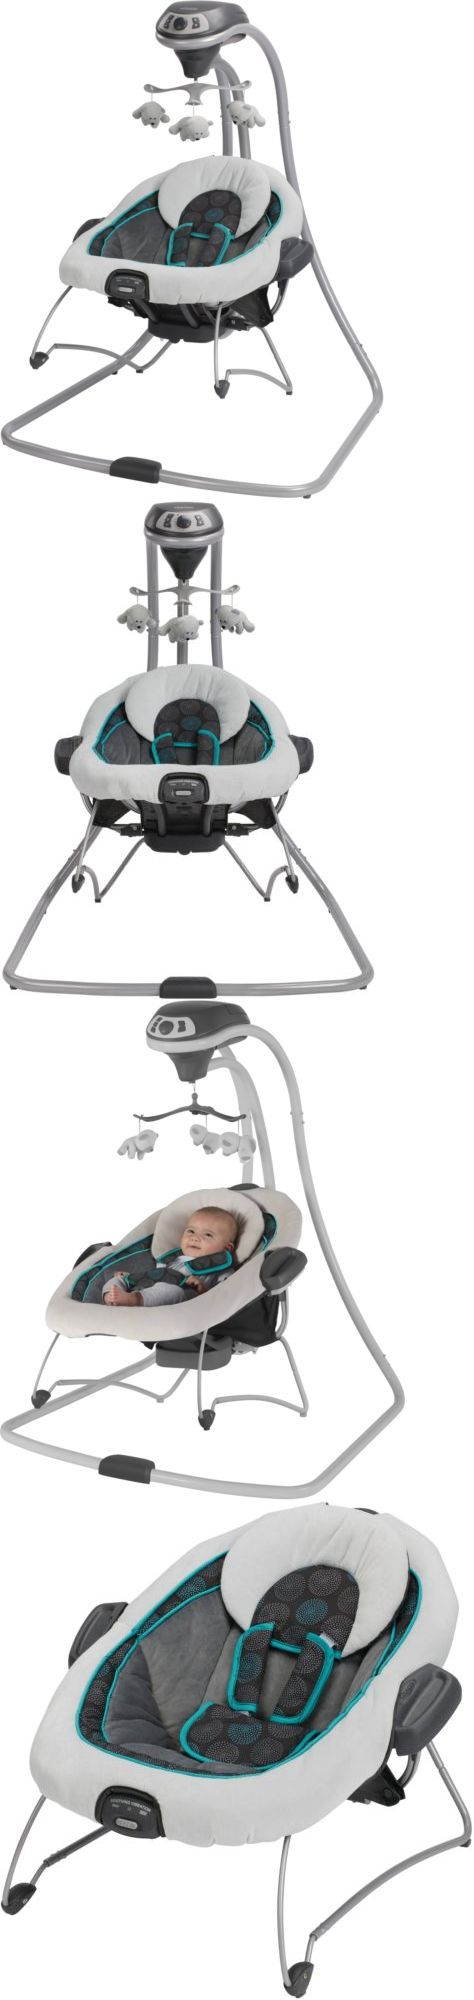 Baby Swings 2990: Graco Duetconnect Swing And Bouncer Bristol Baby Gear Best Selling #1 New Sleep -> BUY IT NOW ONLY: $144 on eBay!